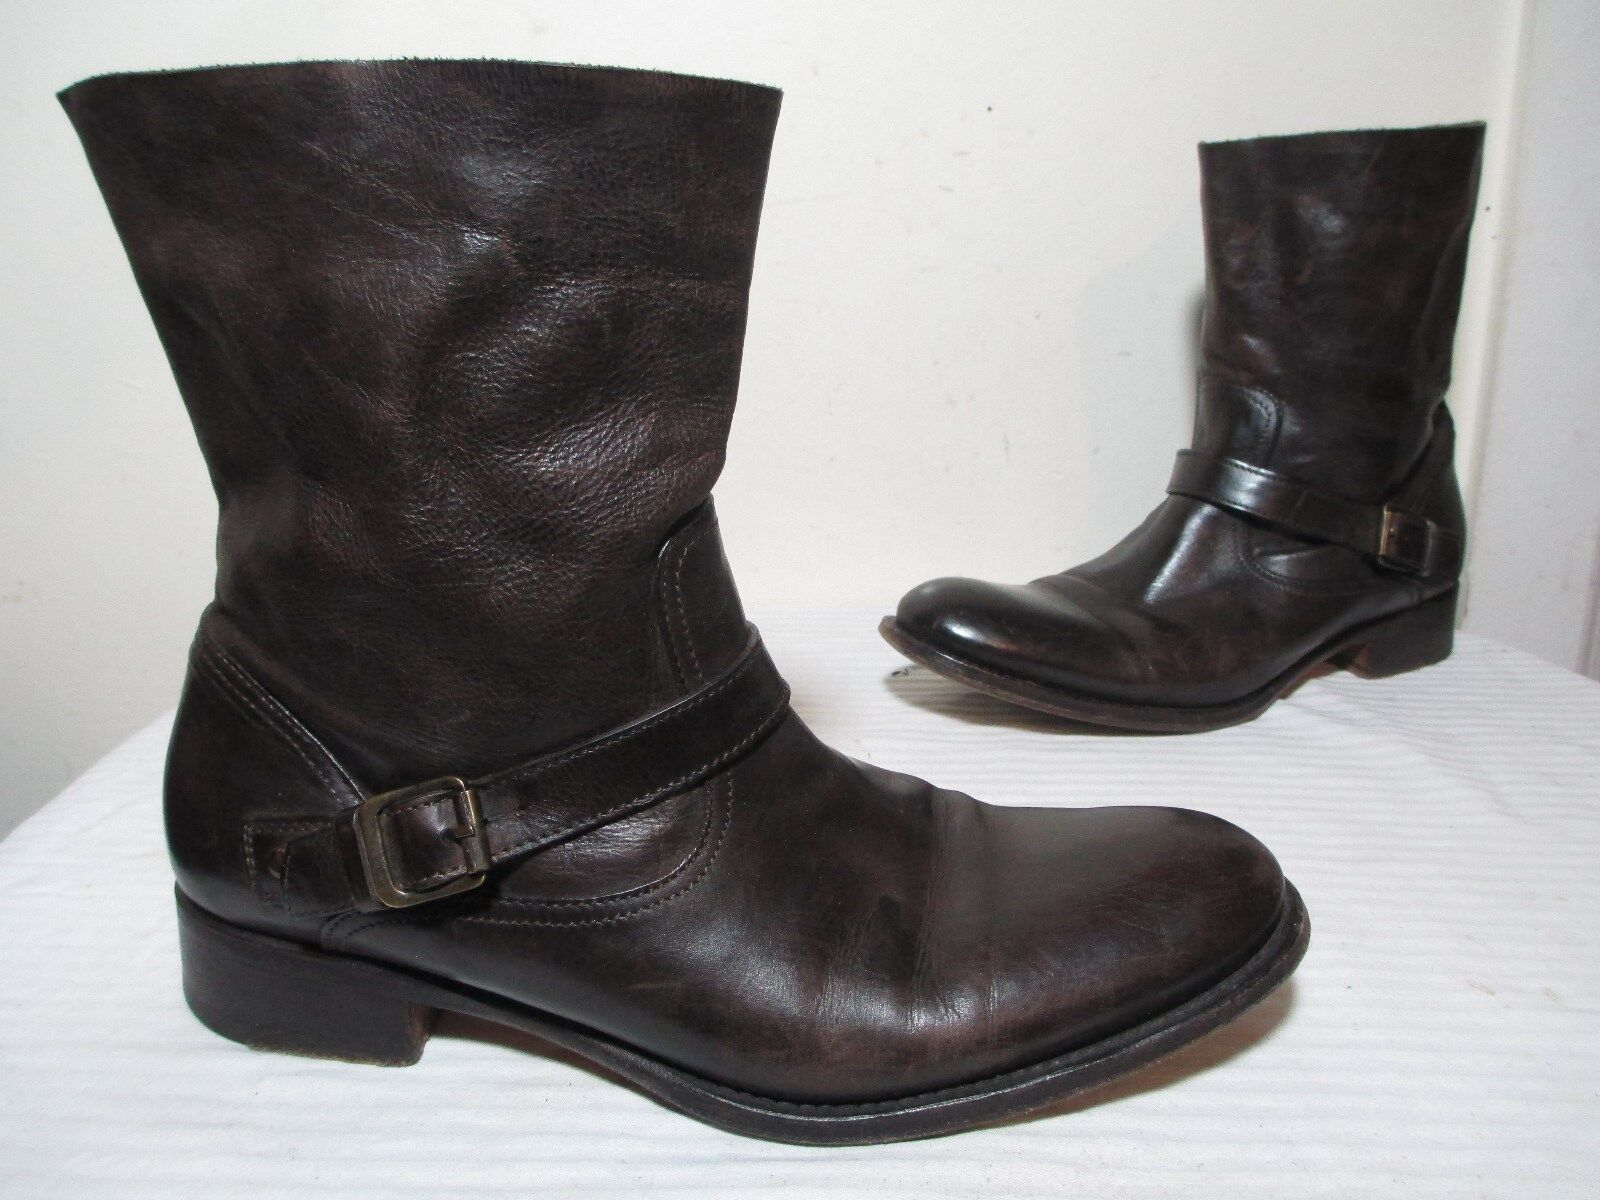 650 N.D.C BROWN LEATHER MADE BY HAND CARA BOOTS MADE IN PORTUGAL SZ 39½ US 7½